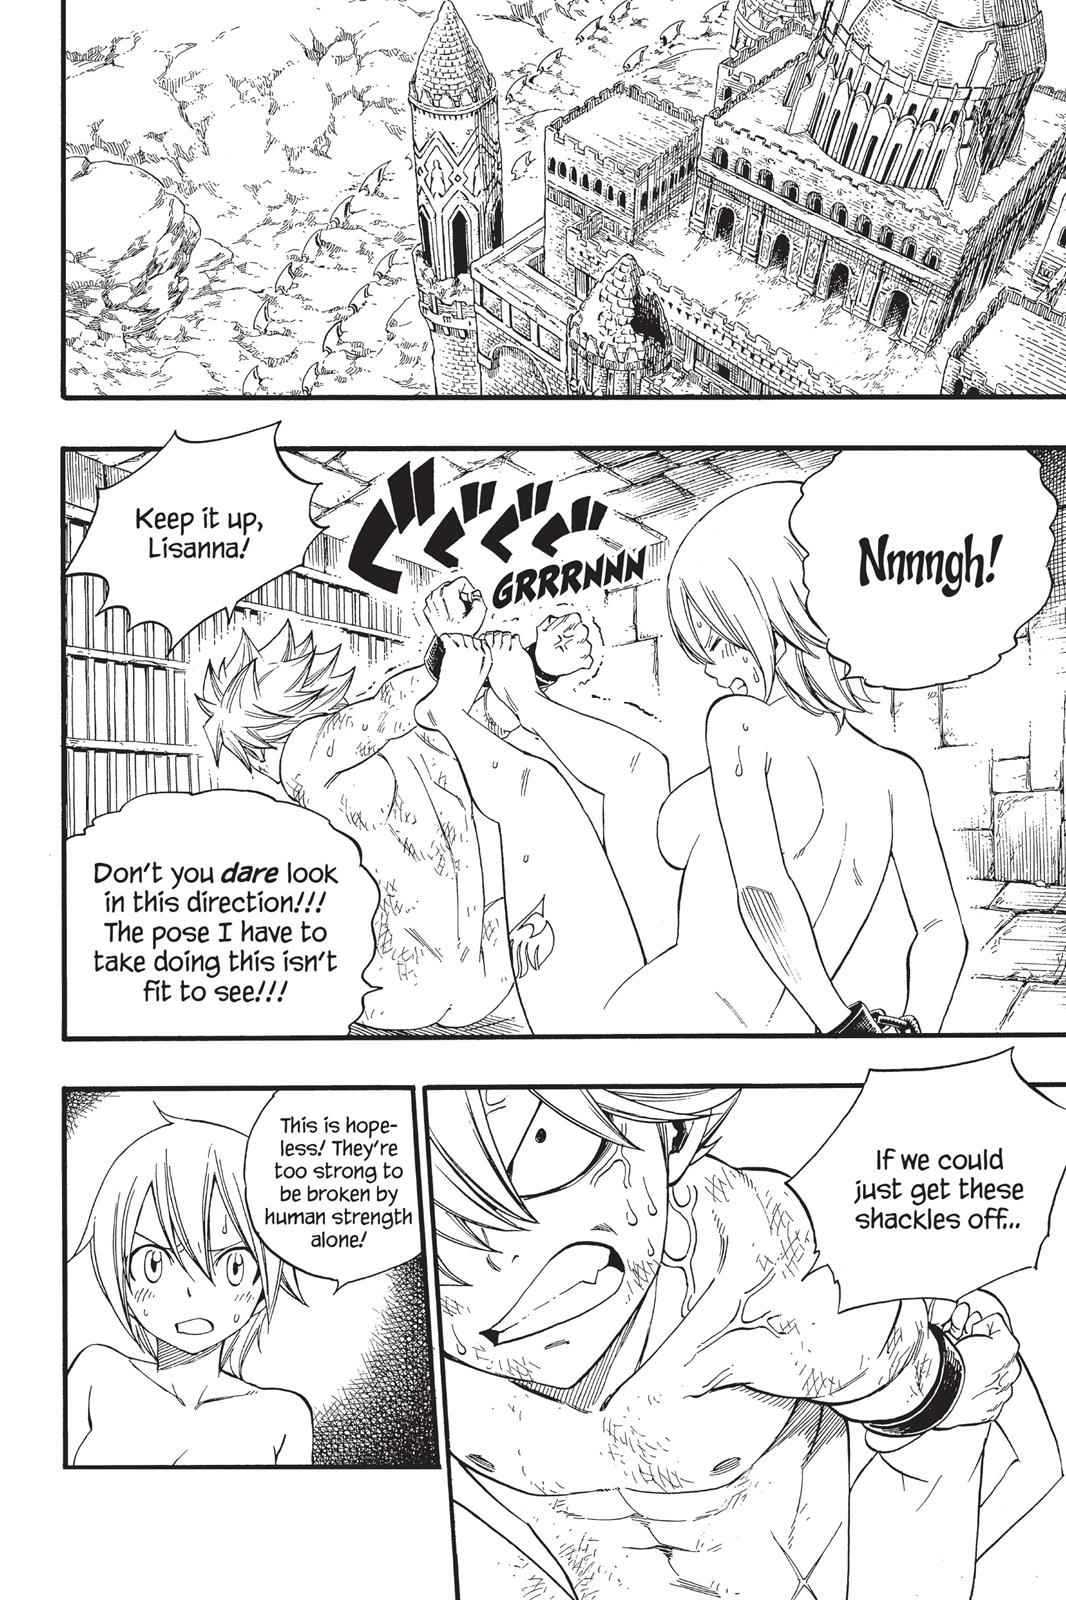 Fairy Tail Chapter 368 Page 8